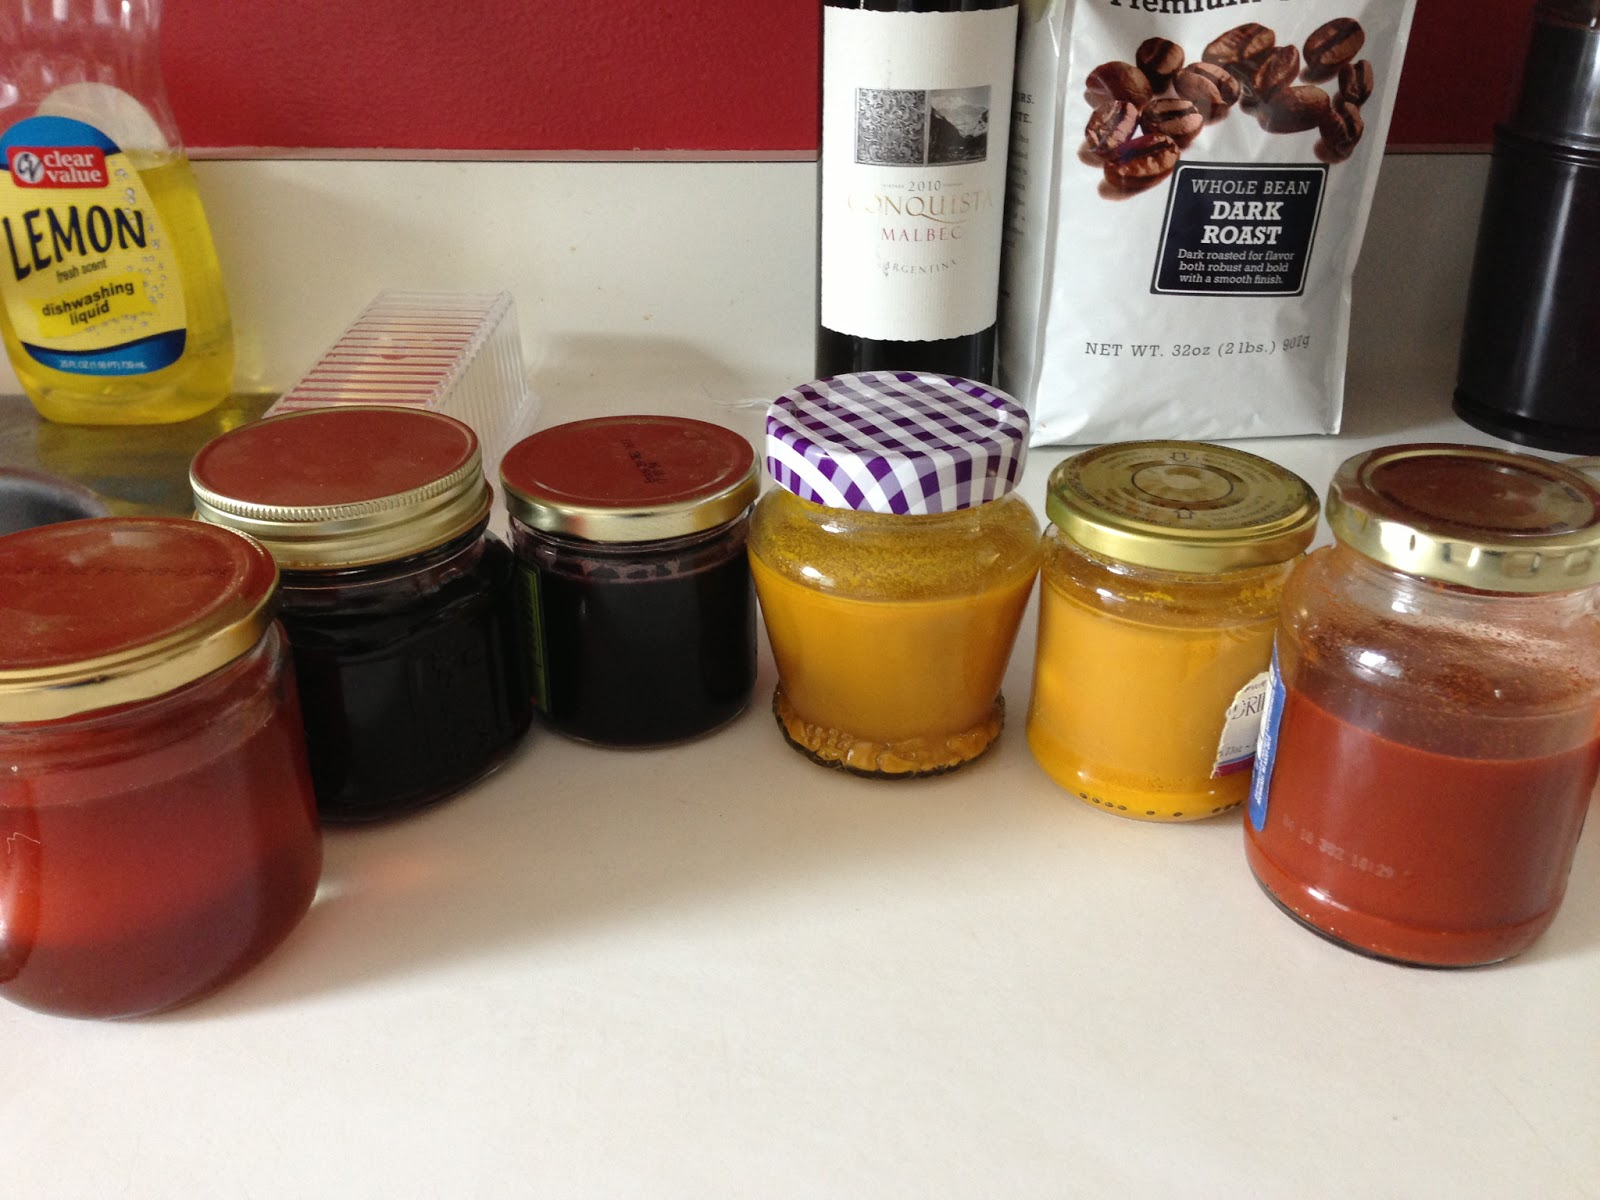 Eggs dyeing in natural color (from left to right: Onion skin, red wine, blueberry juice, 2 x turmeric and paprika powder)